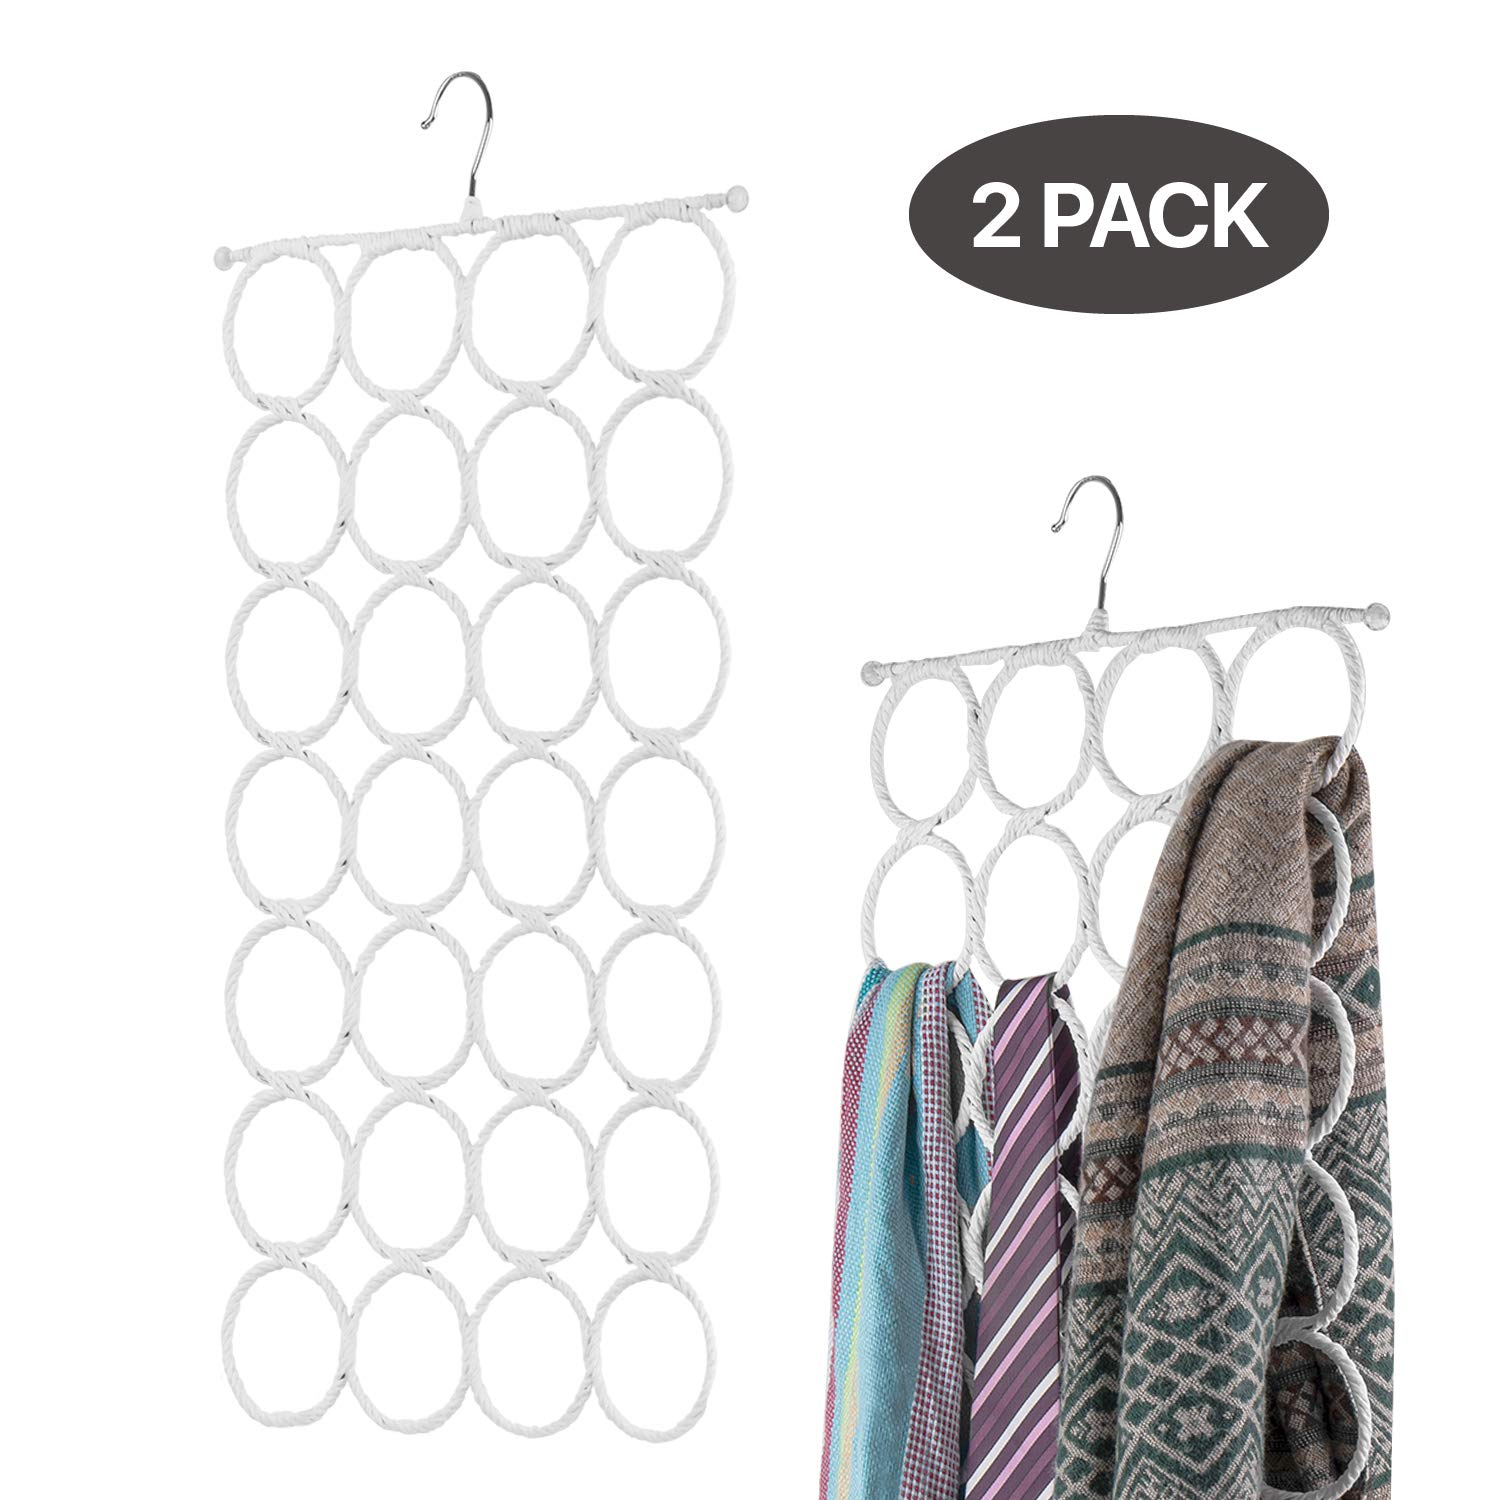 Flexzion Scarf Hanger Holder - 28 Count Circles/Ring Slots Multifunctional Hanging Rack, Home Organizer, for Socks Scarf Ties Belt Mufflers Shawl/Door Closet Organization (White, 2 Pack) by Flexzion